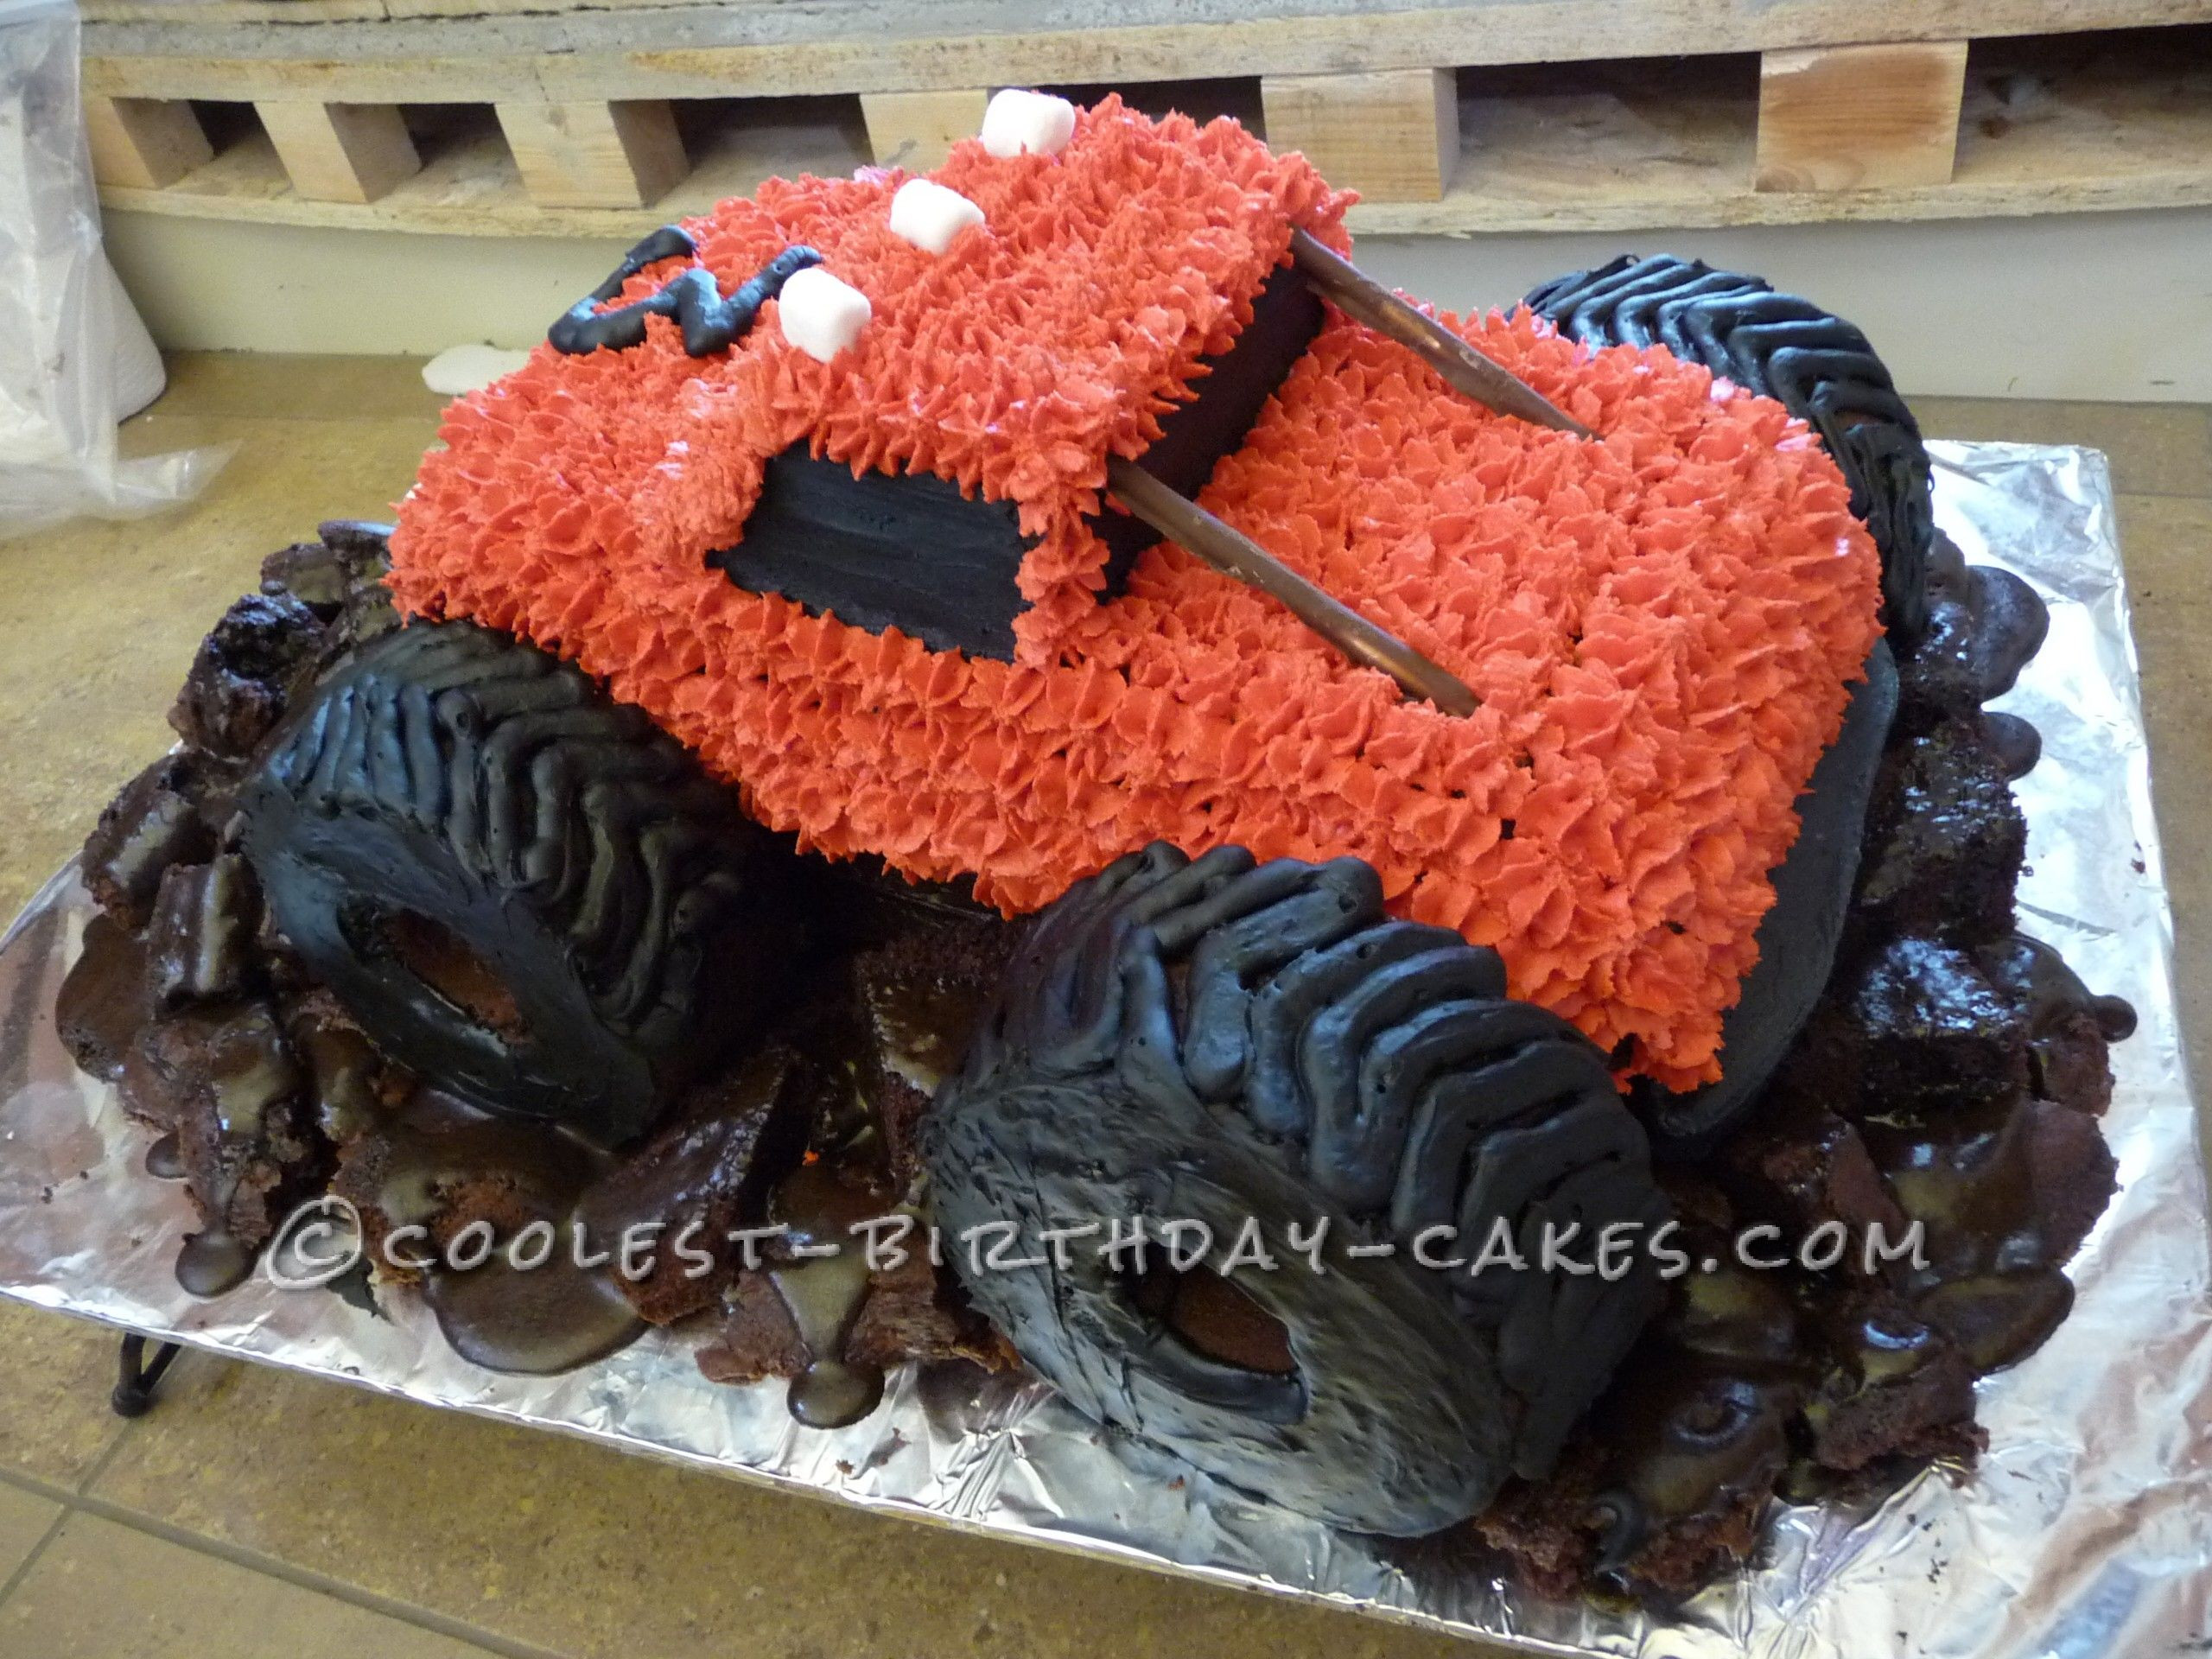 Best ideas about Monster Truck Birthday Cake . Save or Pin Muddy Monster Truck Birthday Cake Now.